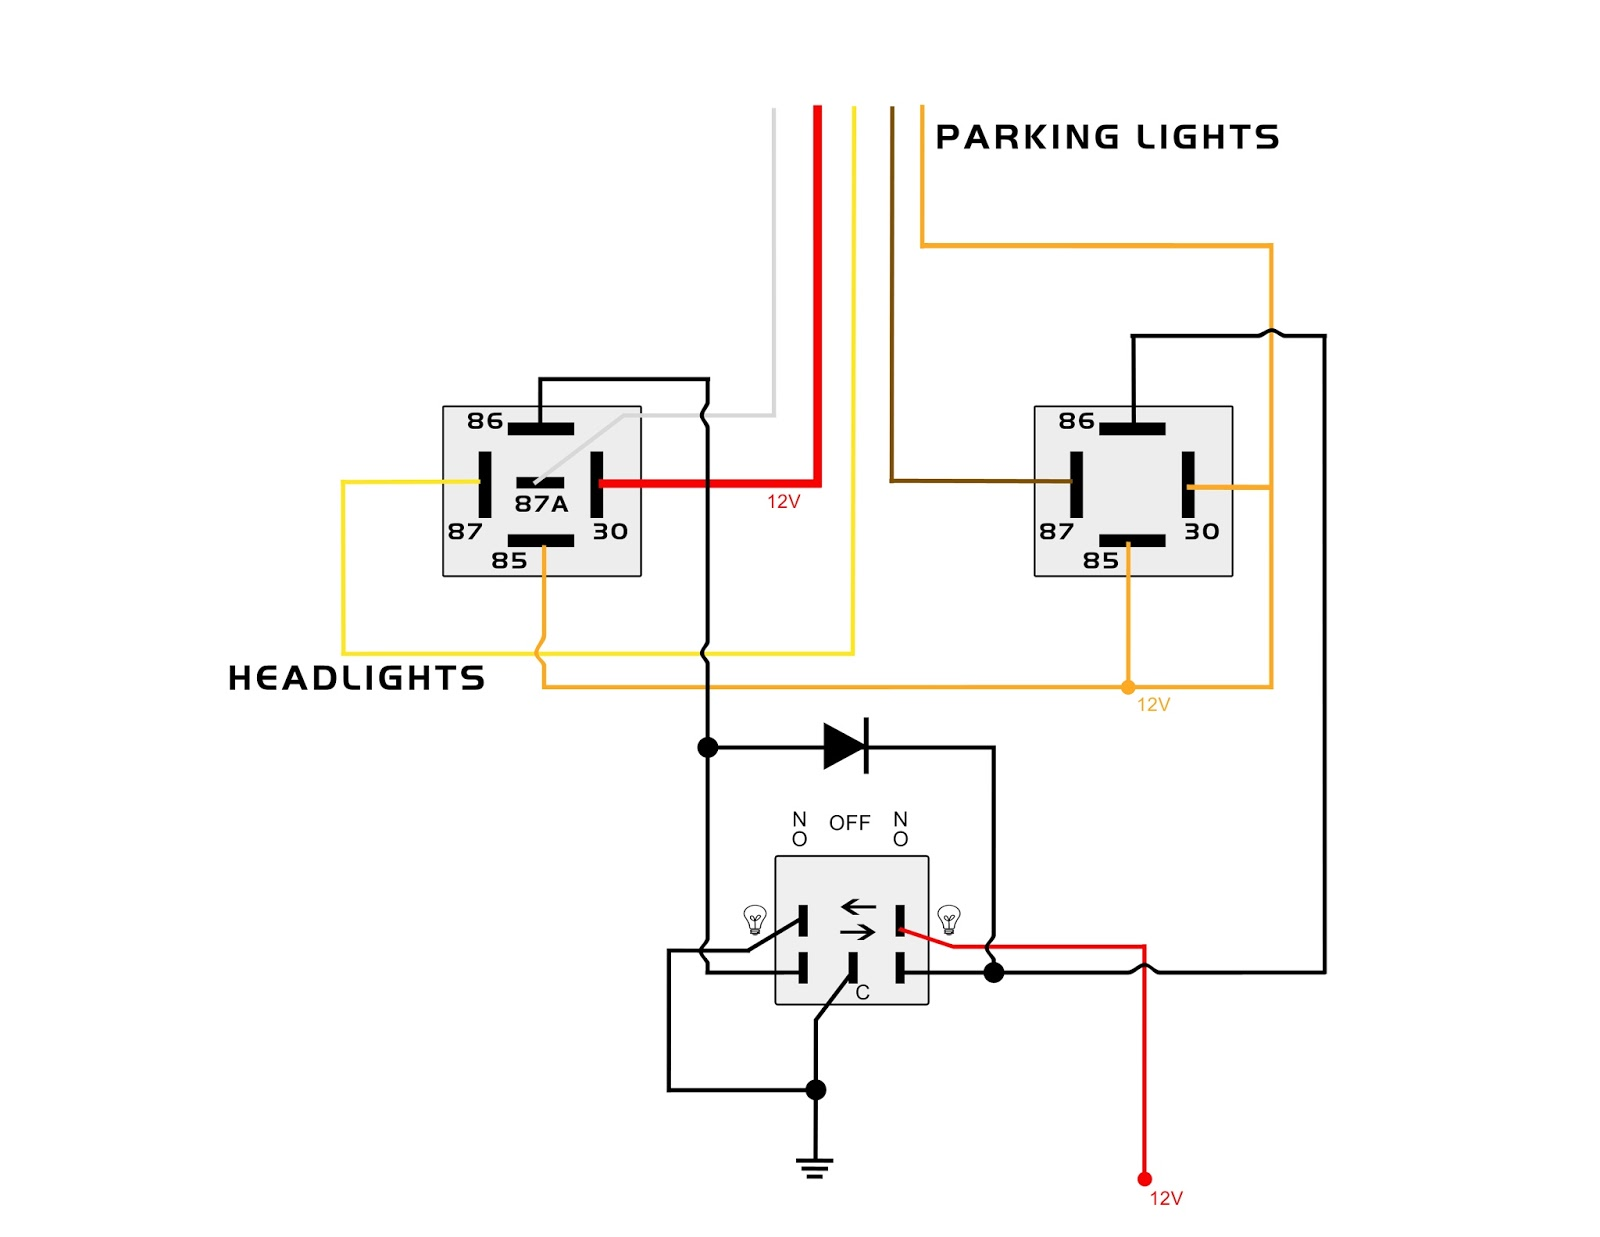 medium resolution of if you are working on your lower console wiring and need to wire one of your switches to activate the parking and headlights this hand diagram will